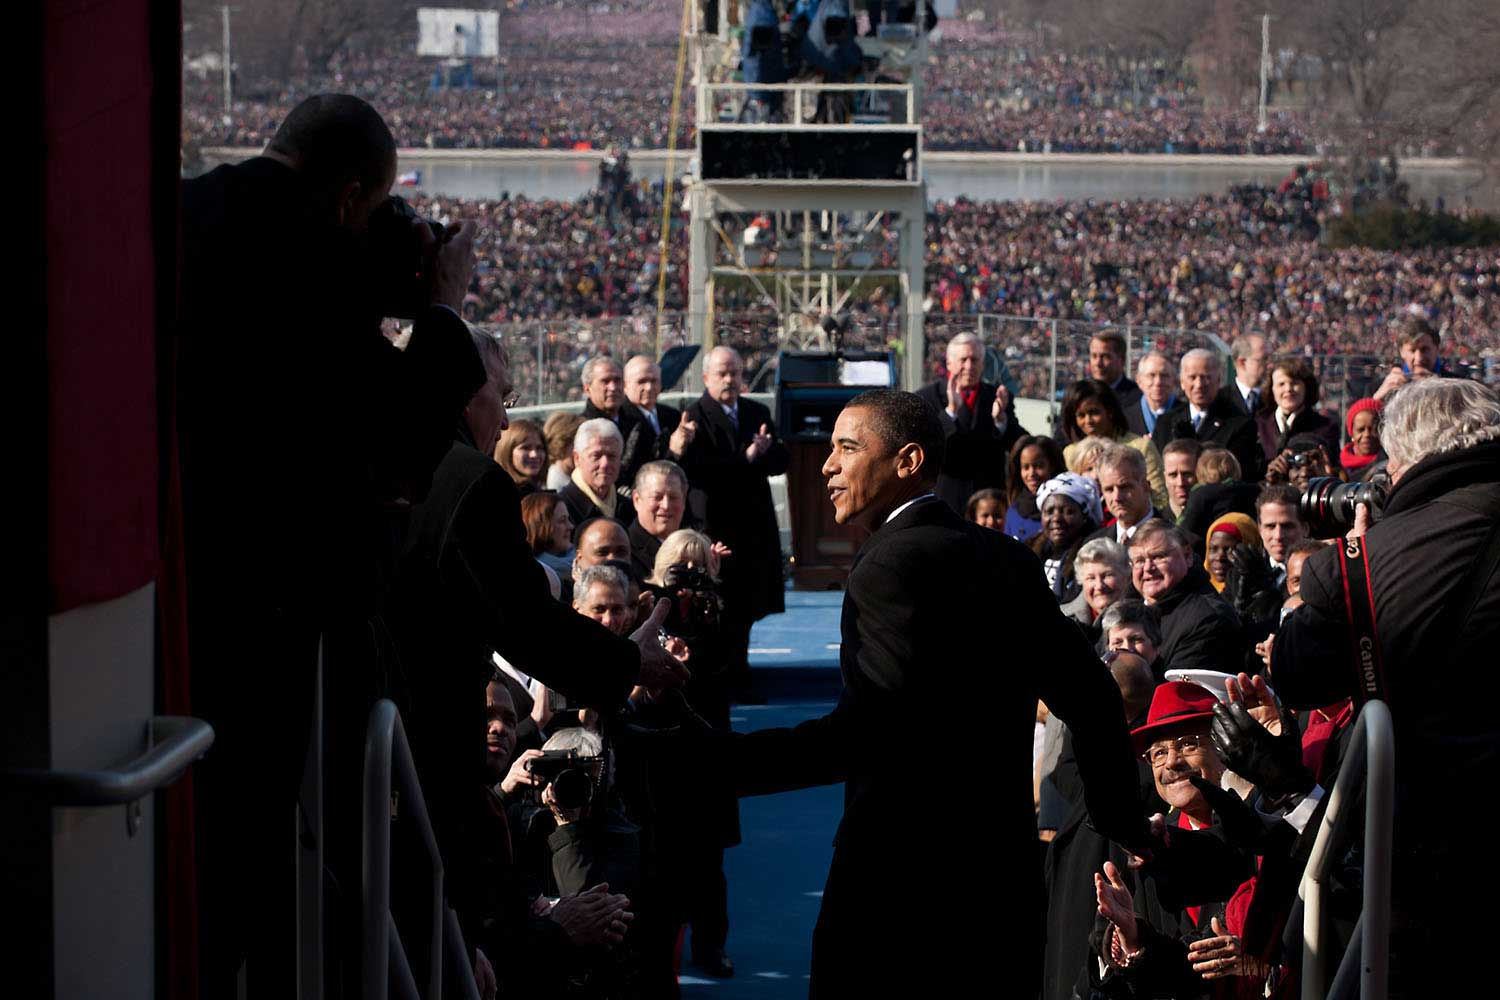 President-elect Barack Obama walks to the podium for his Inauguration as the 44th President at the U.S. Capitol in Washington, D.C., Jan. 20, 2009.